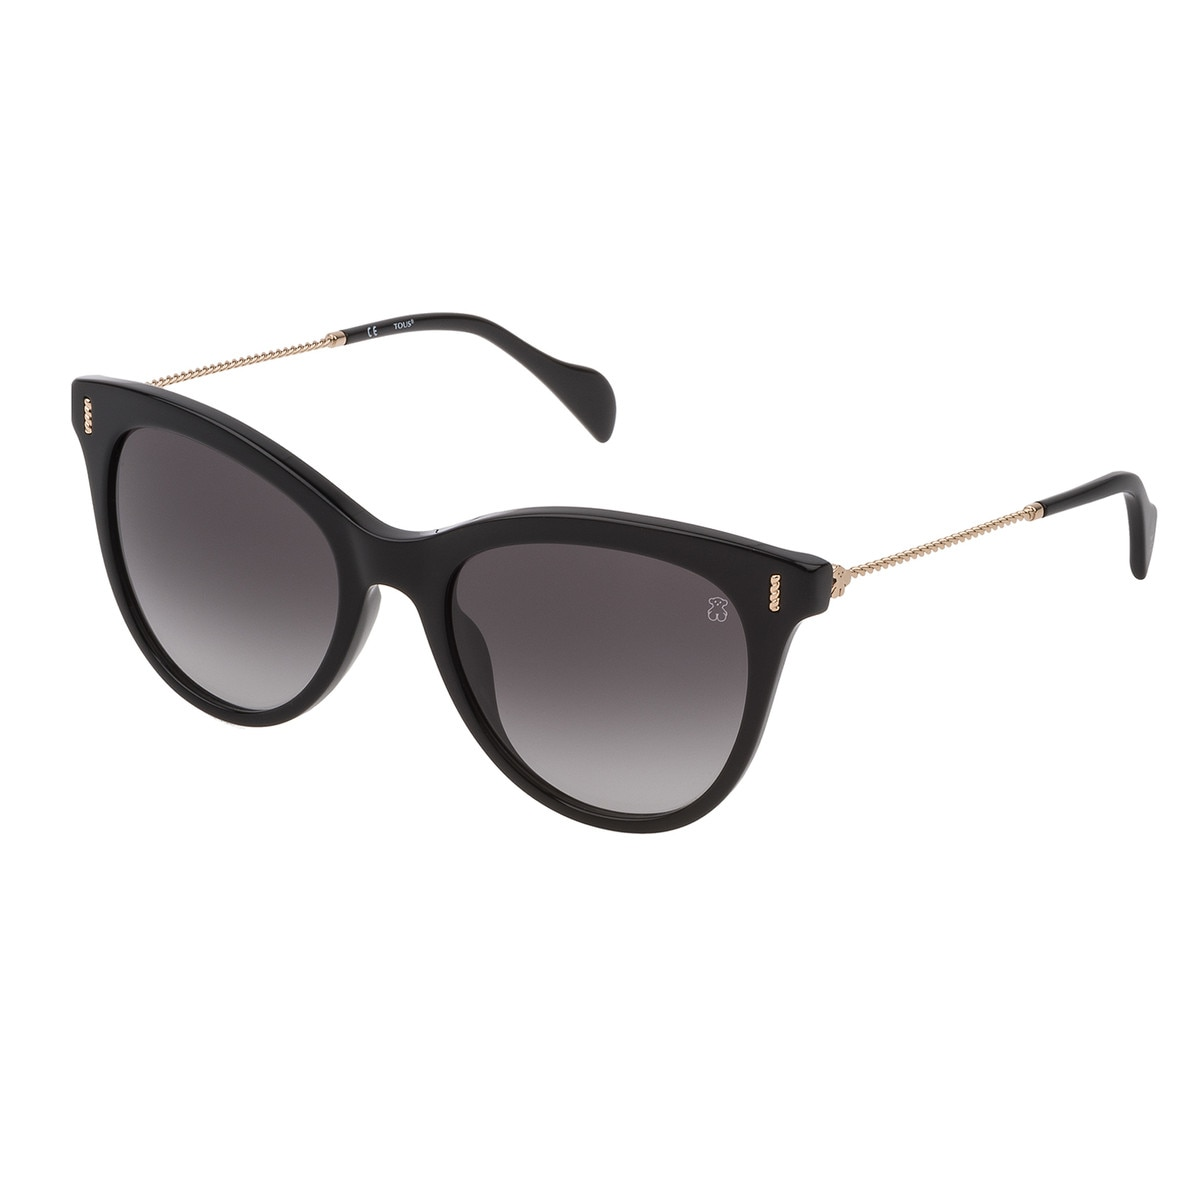 Black Acetate Braided Sunglasses